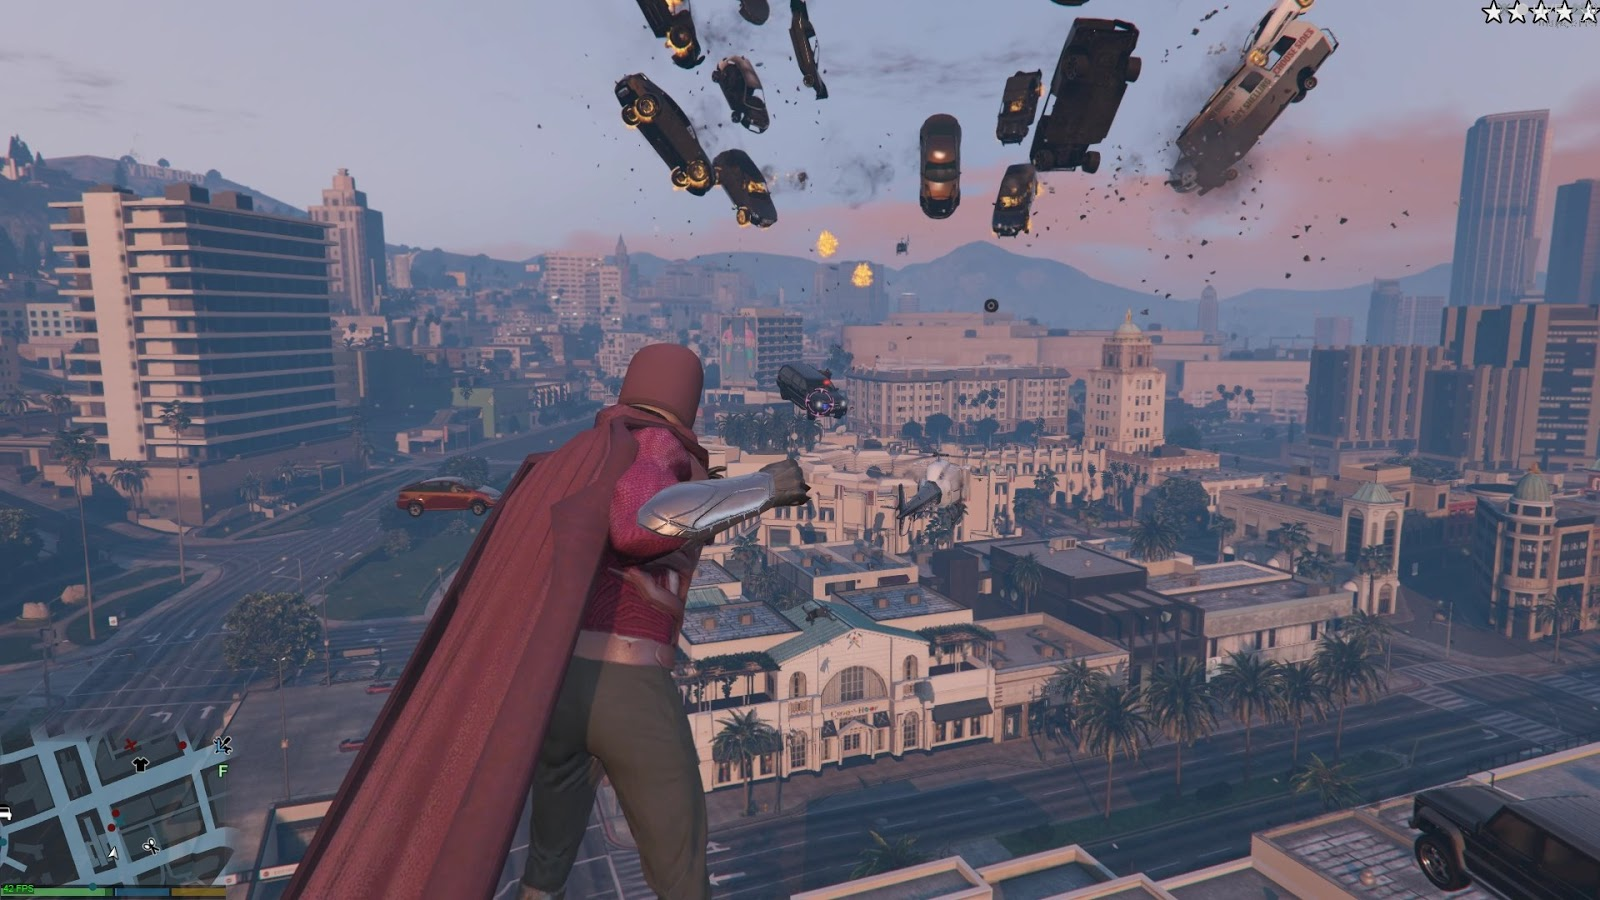 Magneto mod lets you do all the best Magneto things in GTA 5